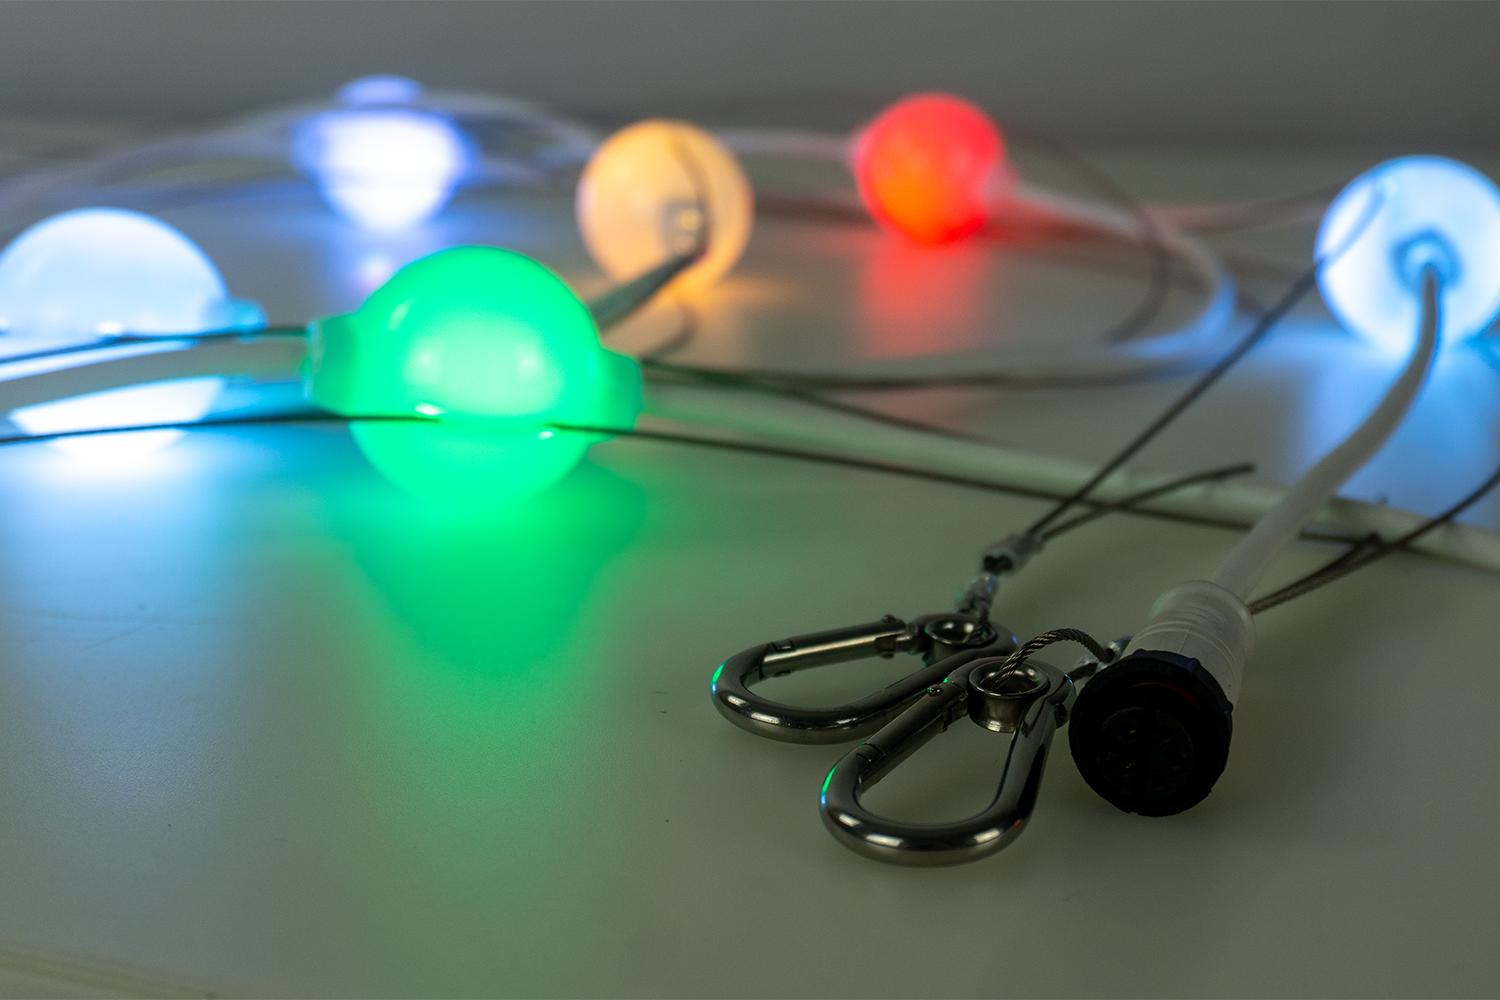 Event Lighting PIXBALLS2 Outdoor Festoon Lighting System, multicolour